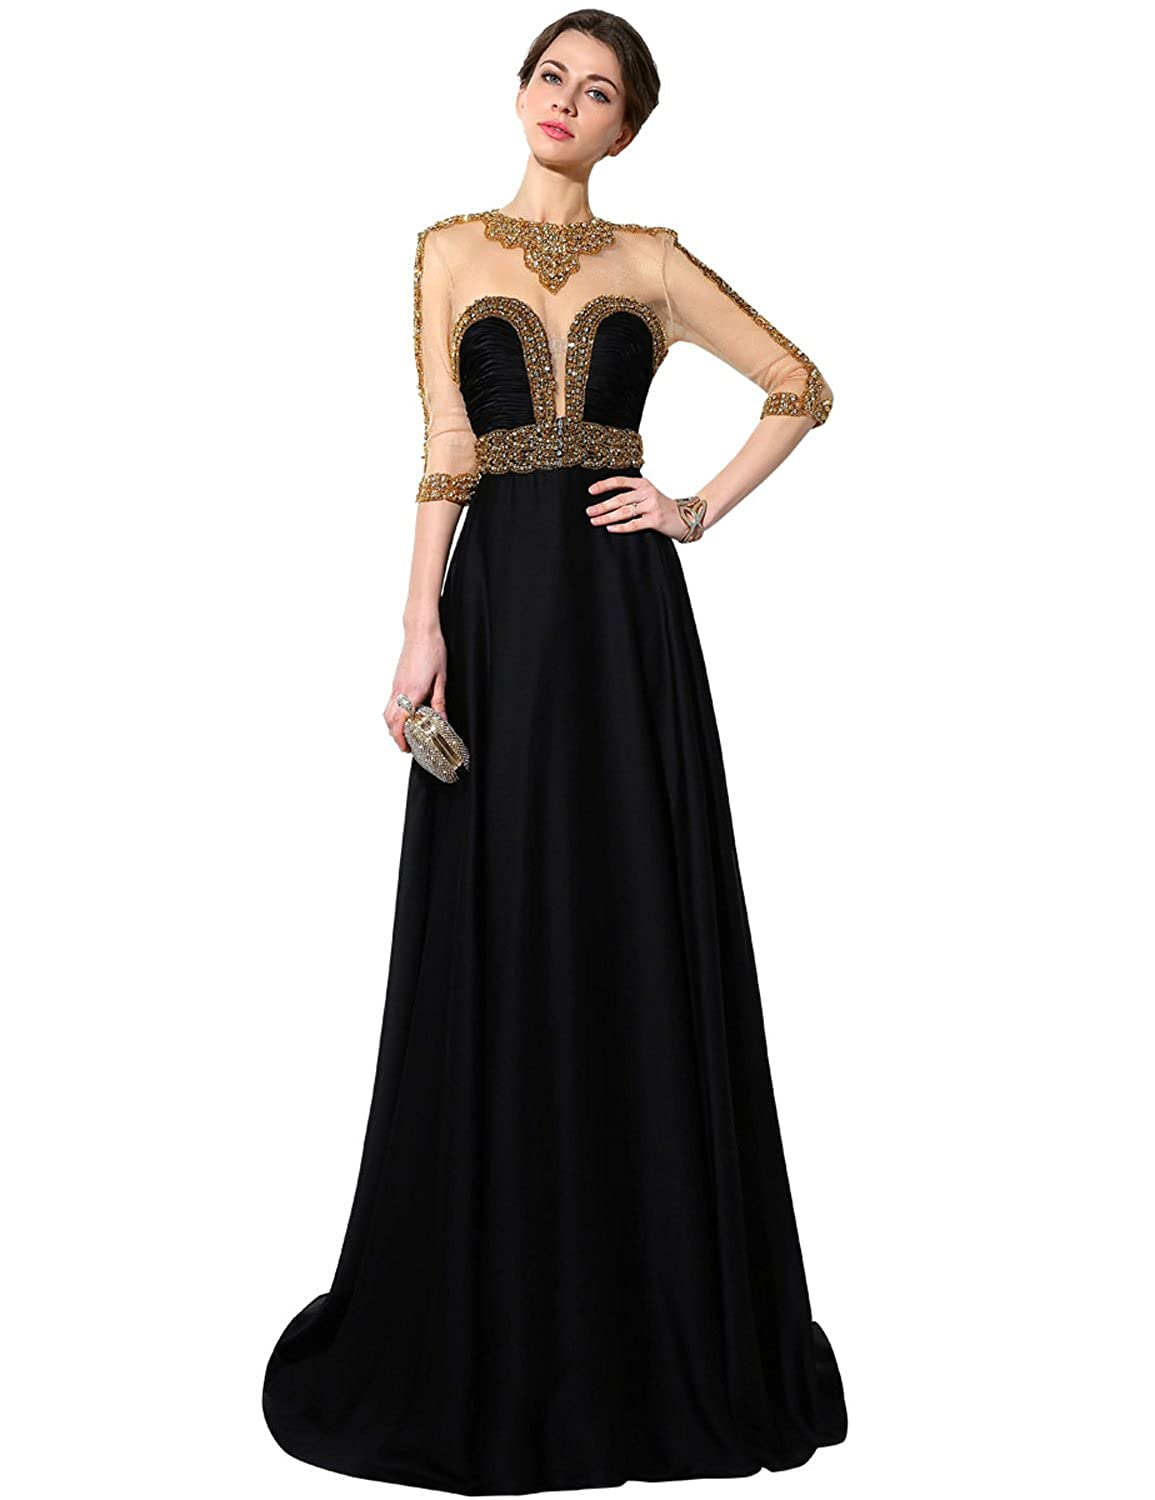 016black Sarahbridal Womens Lace Prom Dresses Formal Evening Gown with Half Sleeve SD328